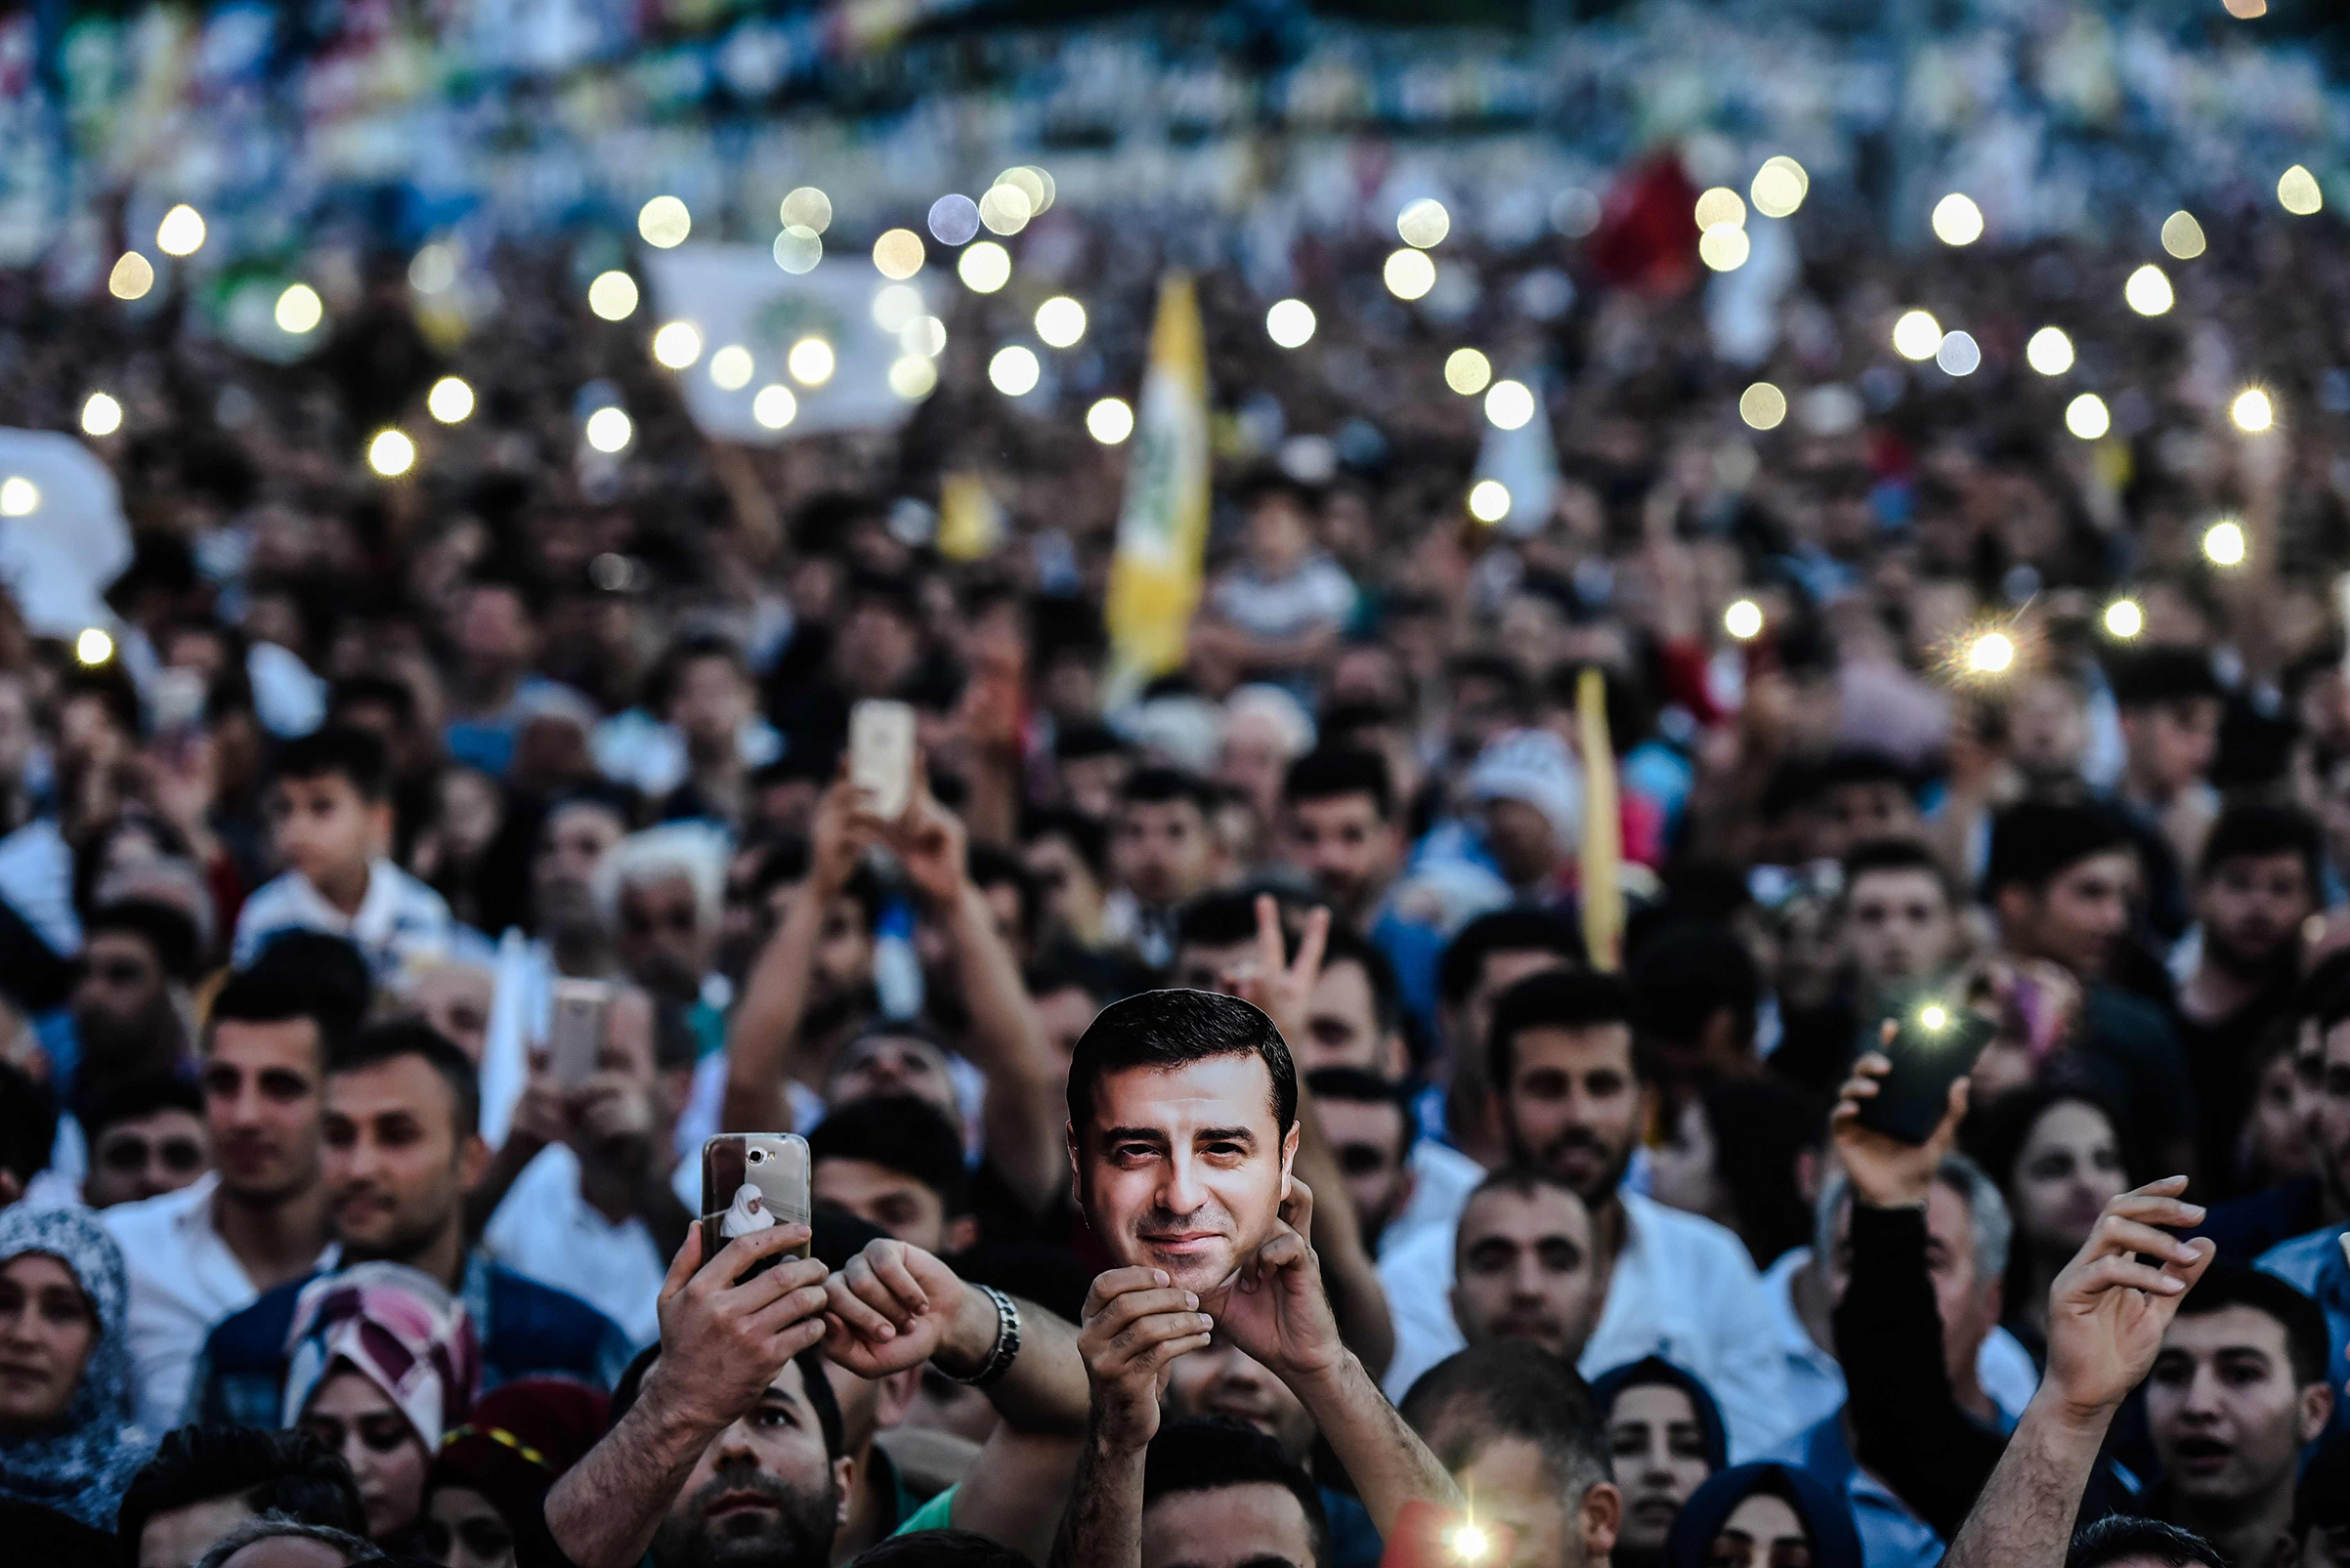 Supporters of imprisoned Selahattin Demirtas, Presidential candidate of People's Democratic Party (HDP), hold HDP flags with picture of of Demirtas during an election campaign office in Istanbul on June 17, 2018.